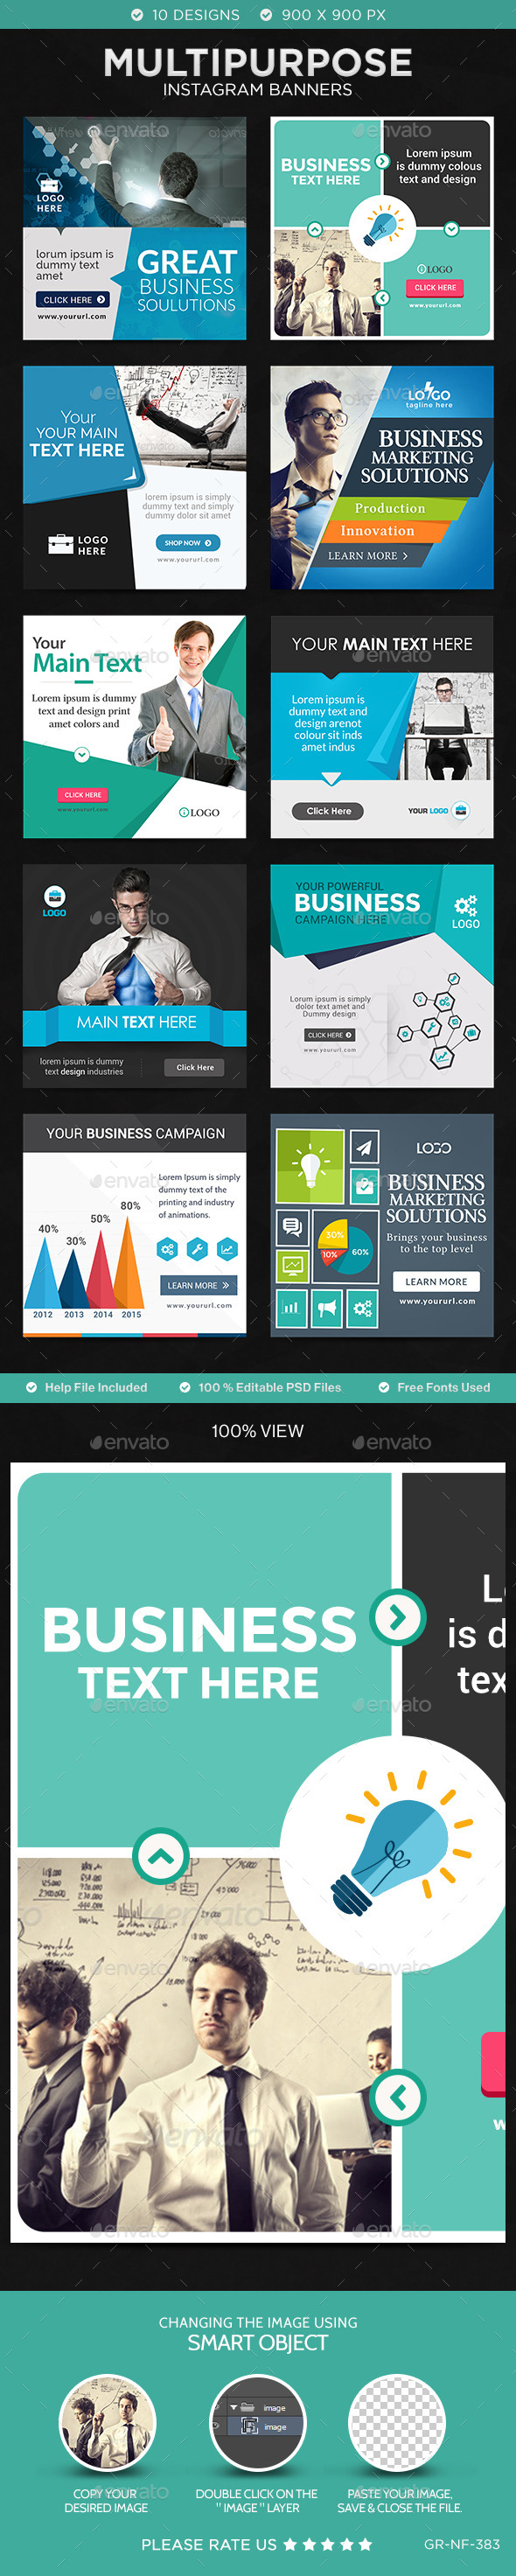 Business Instagram Templates Designs Banners Template And - Instagram ad template